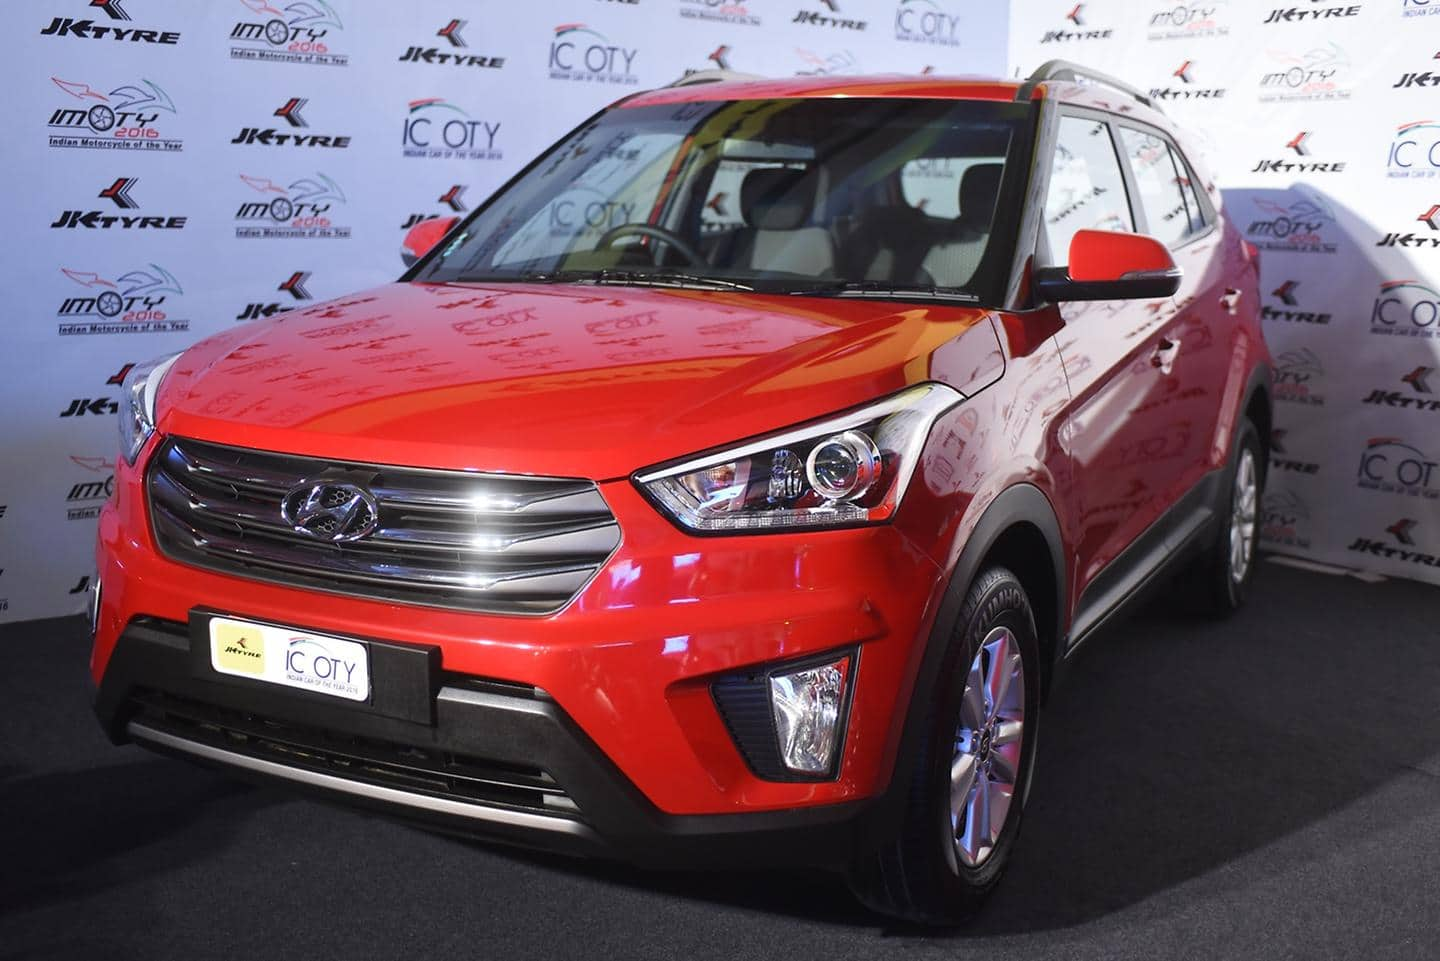 Hyundai Motor's CRETA wins Indian Car of the Year 2016 (ICOTY)